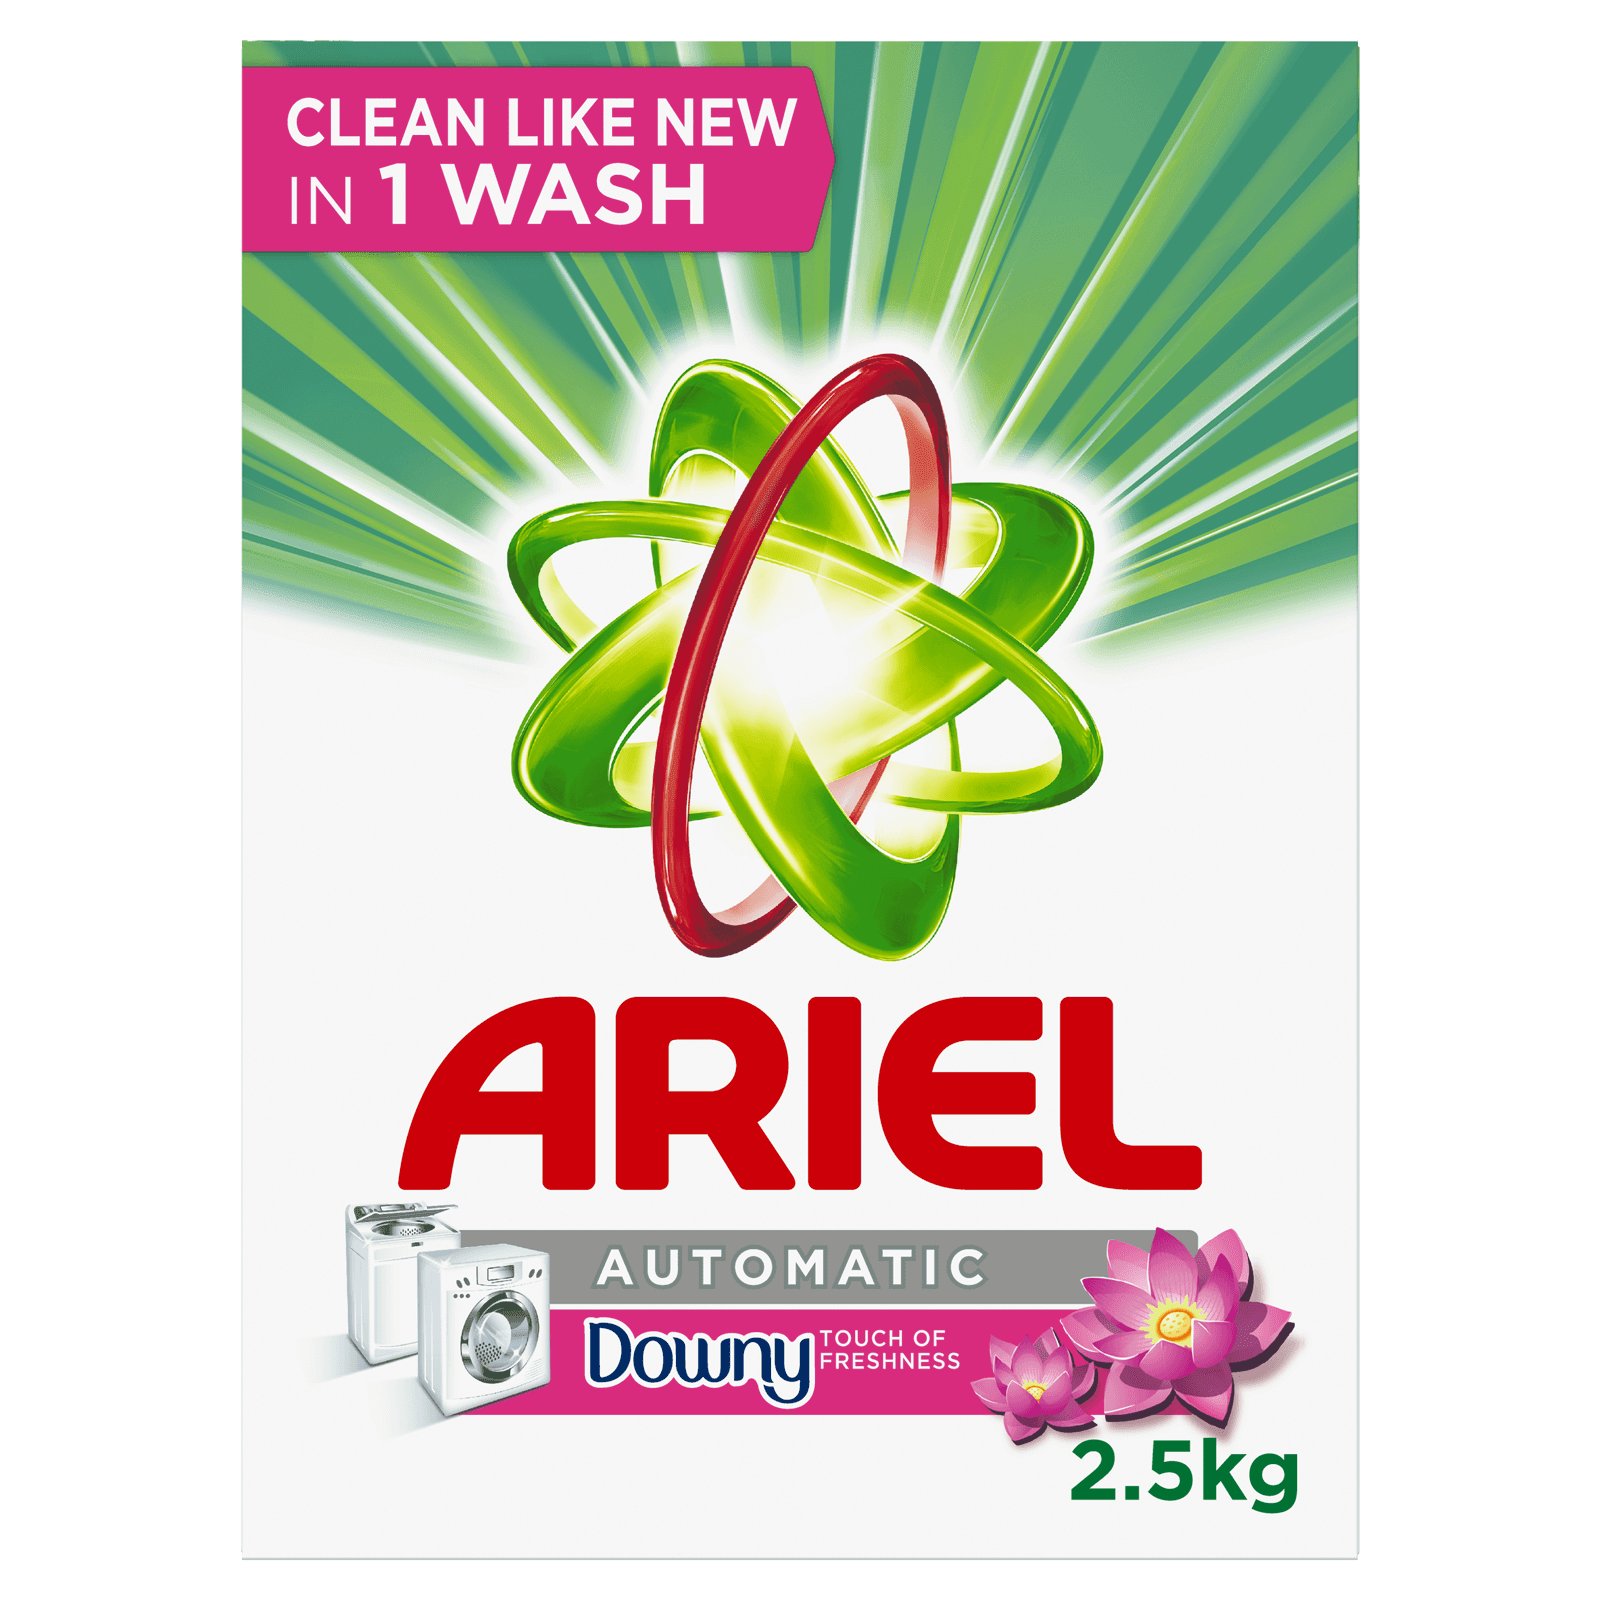 Ariel Automatic Powder Detergent,Touch of Freshness Downy